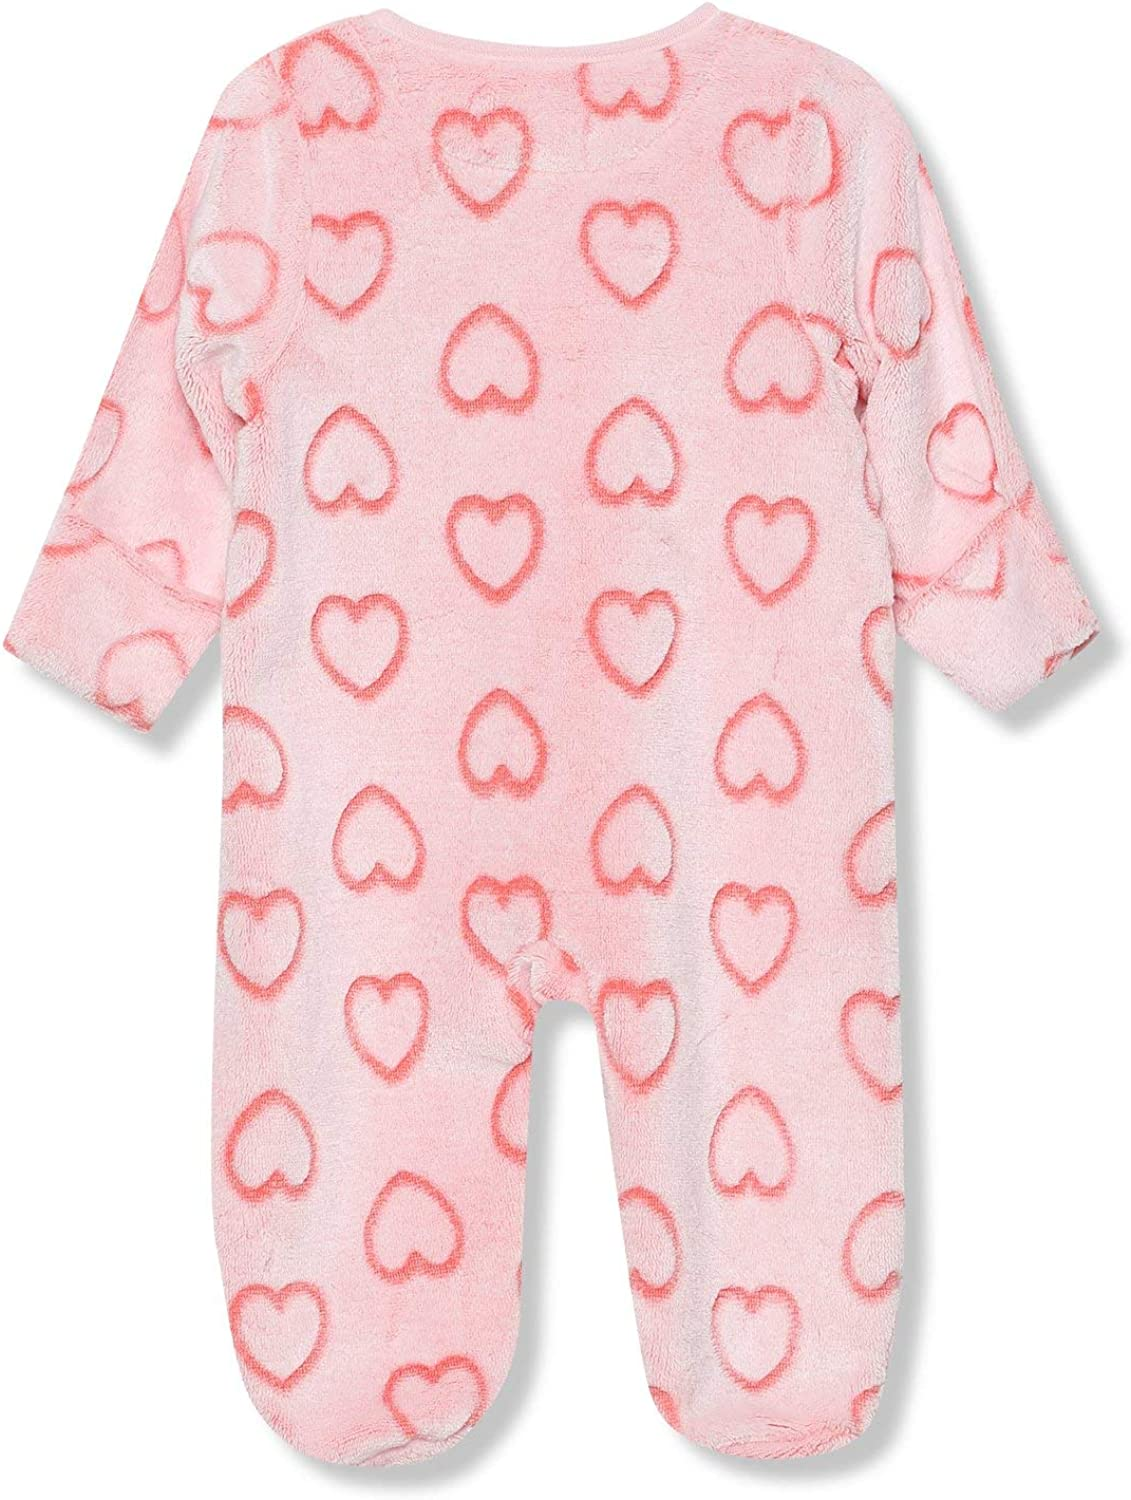 Tinybaby-18Mths M/&Co Floral Stripe Sleepsuits Two Pack